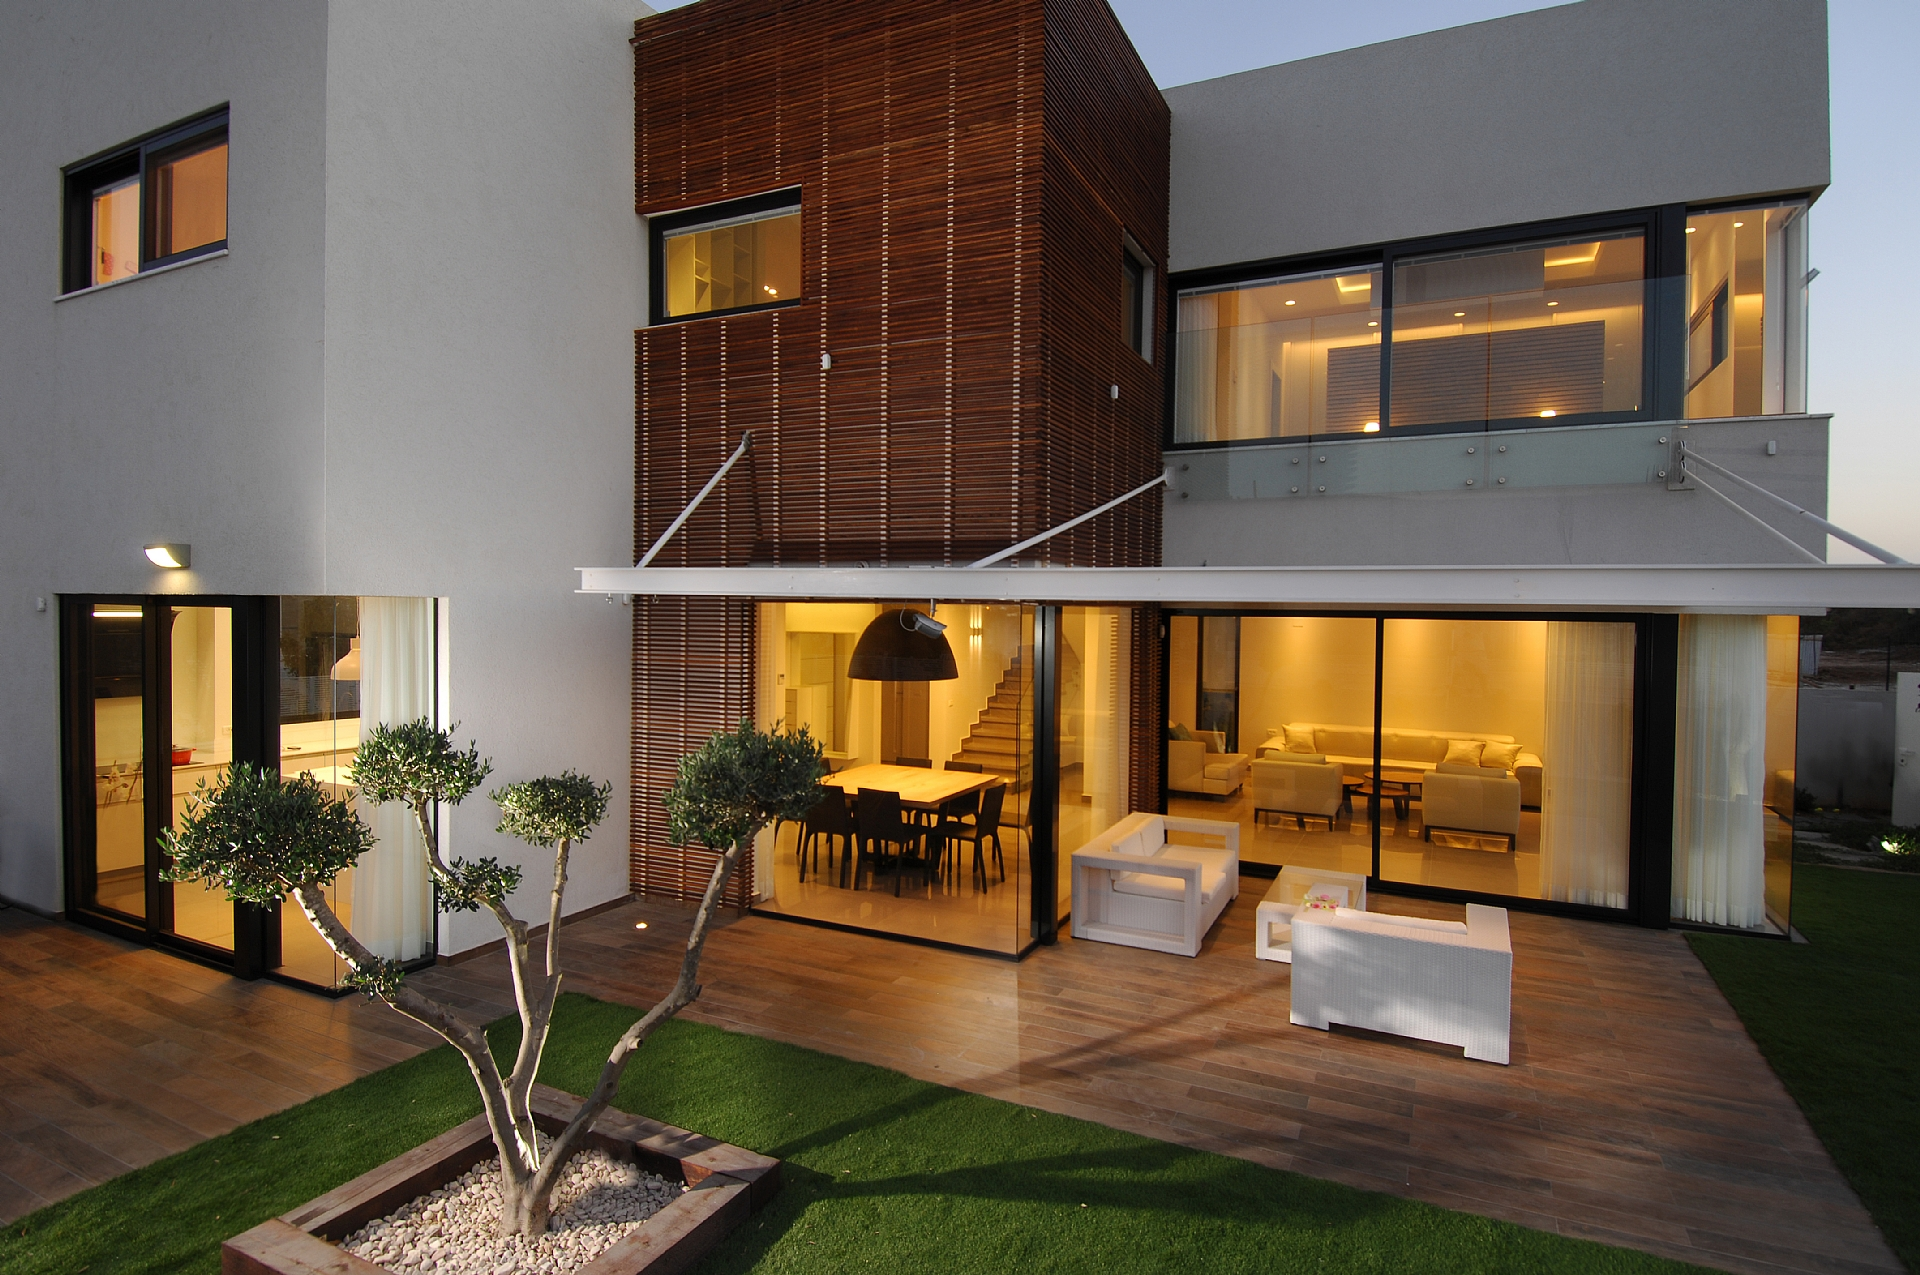 Aluminum sets in a modern home